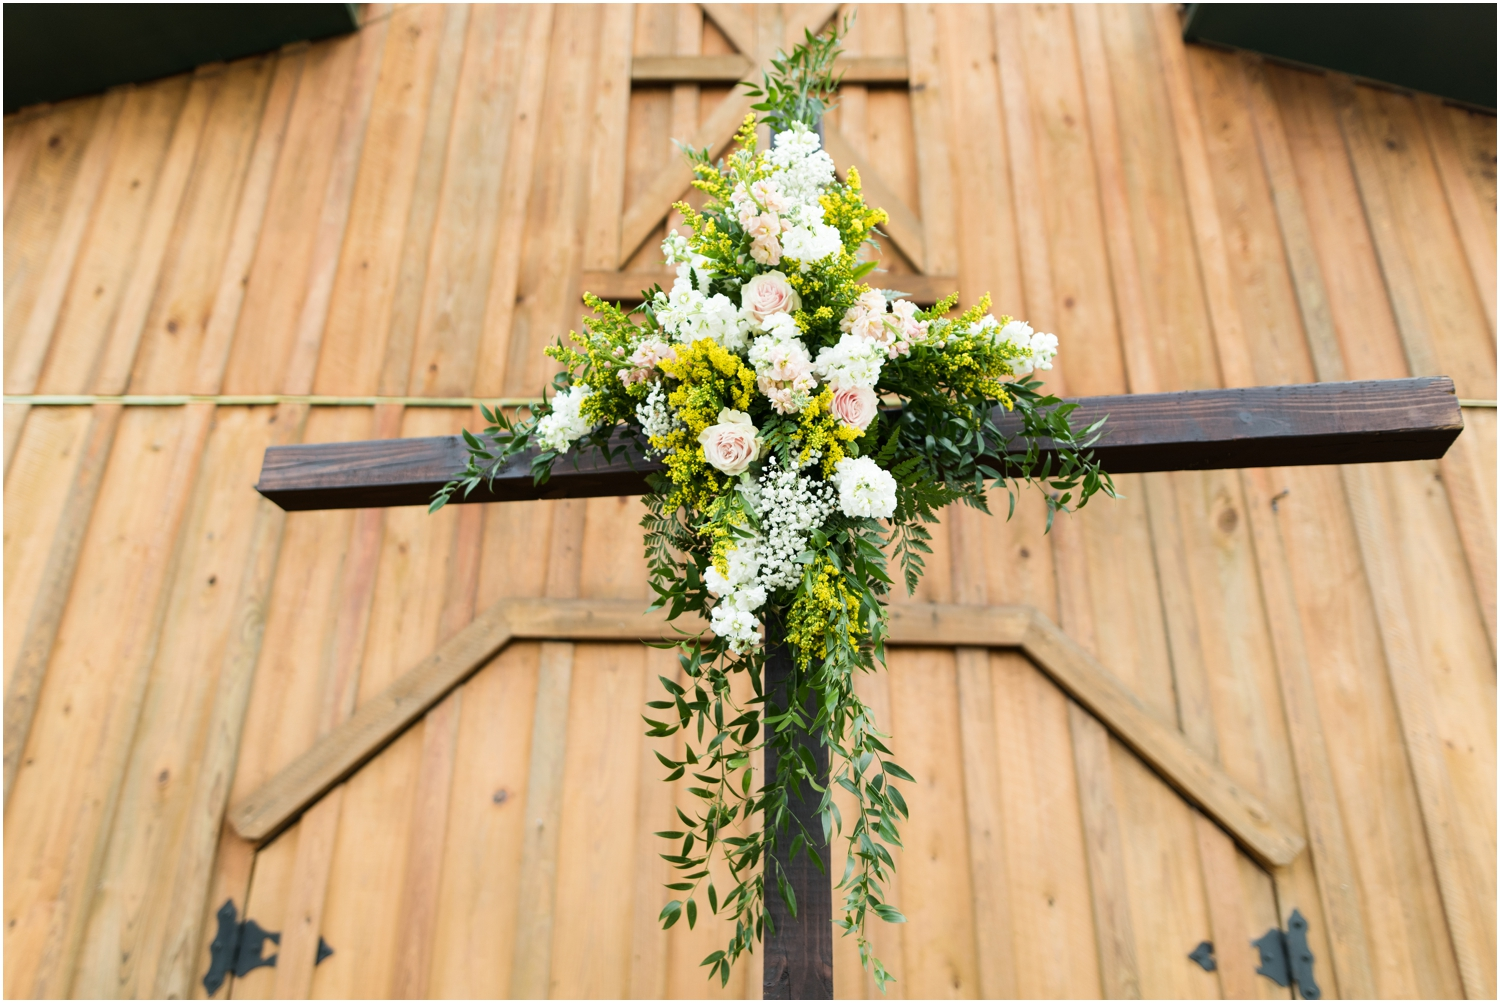 Sowell Farms Milton Florida Rustic Woodsy Barn Wedding Photographer ceremony details cross florals alter arbor